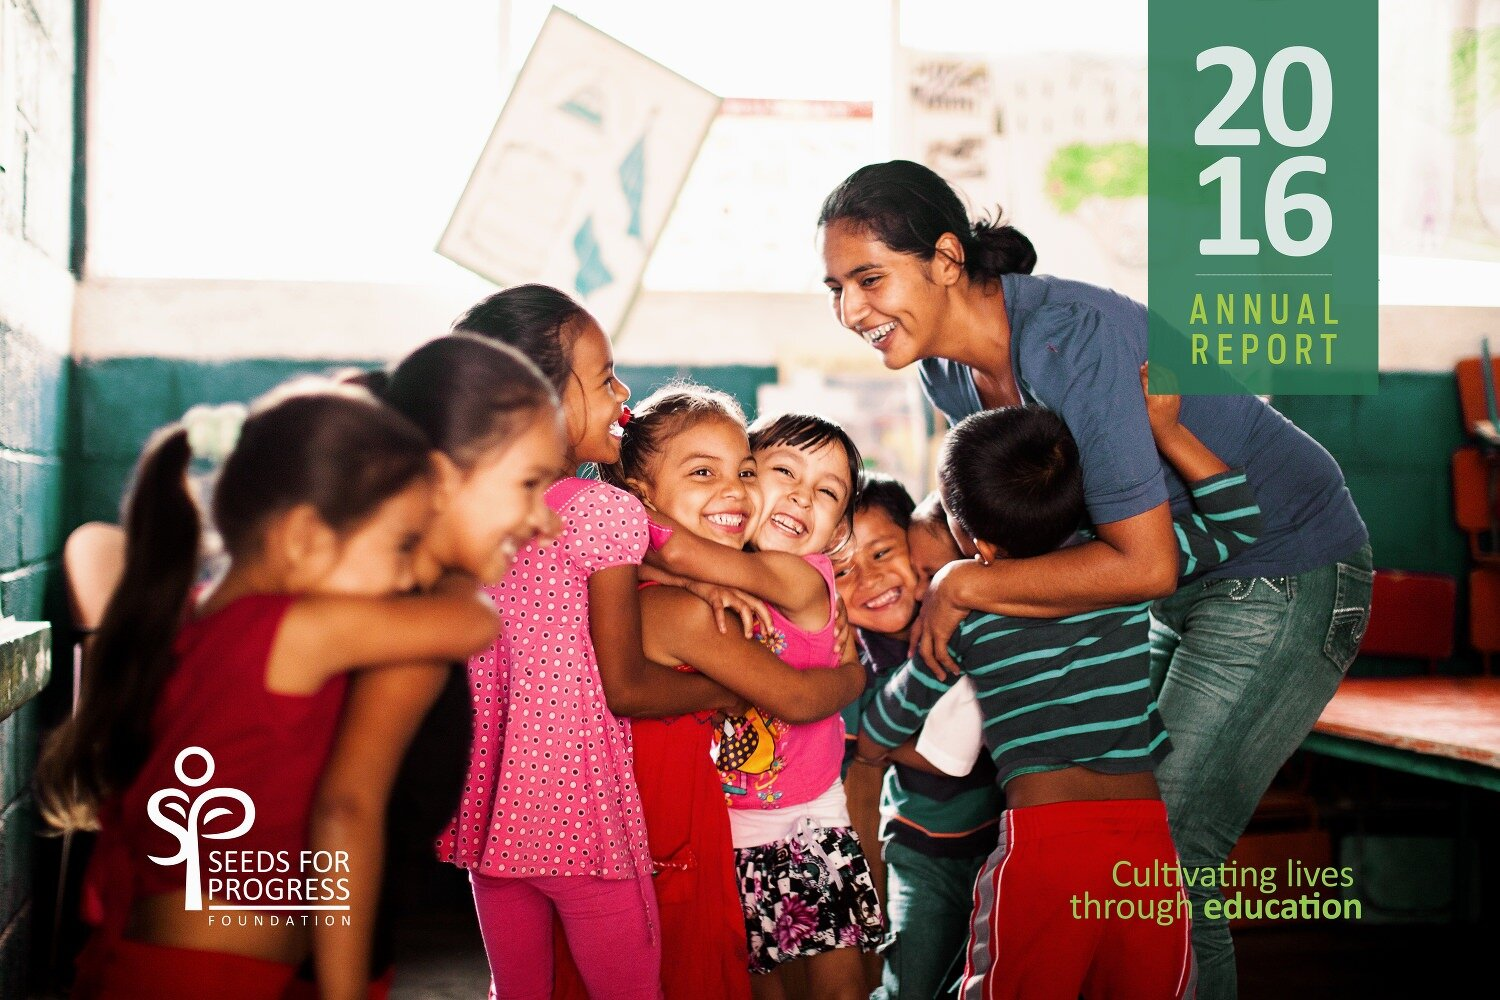 Annual Report Cover |  Seeds for Progress Foundation